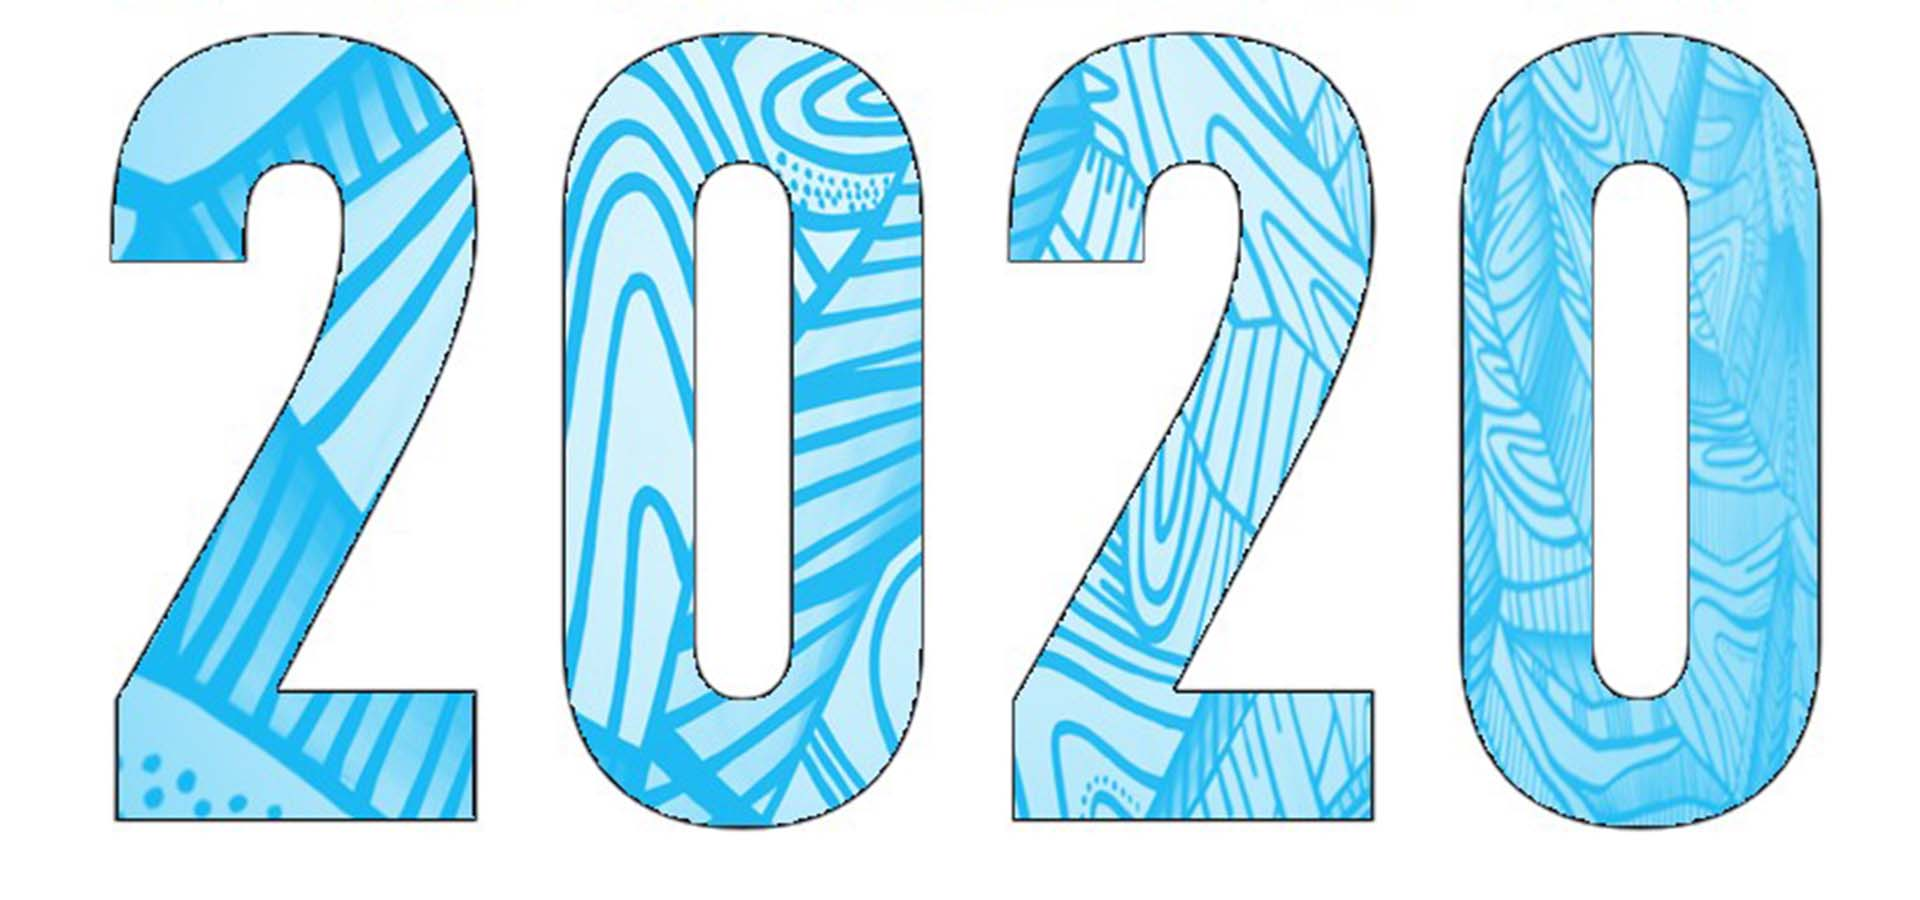 Numbers 2020 in a blue graphic design.